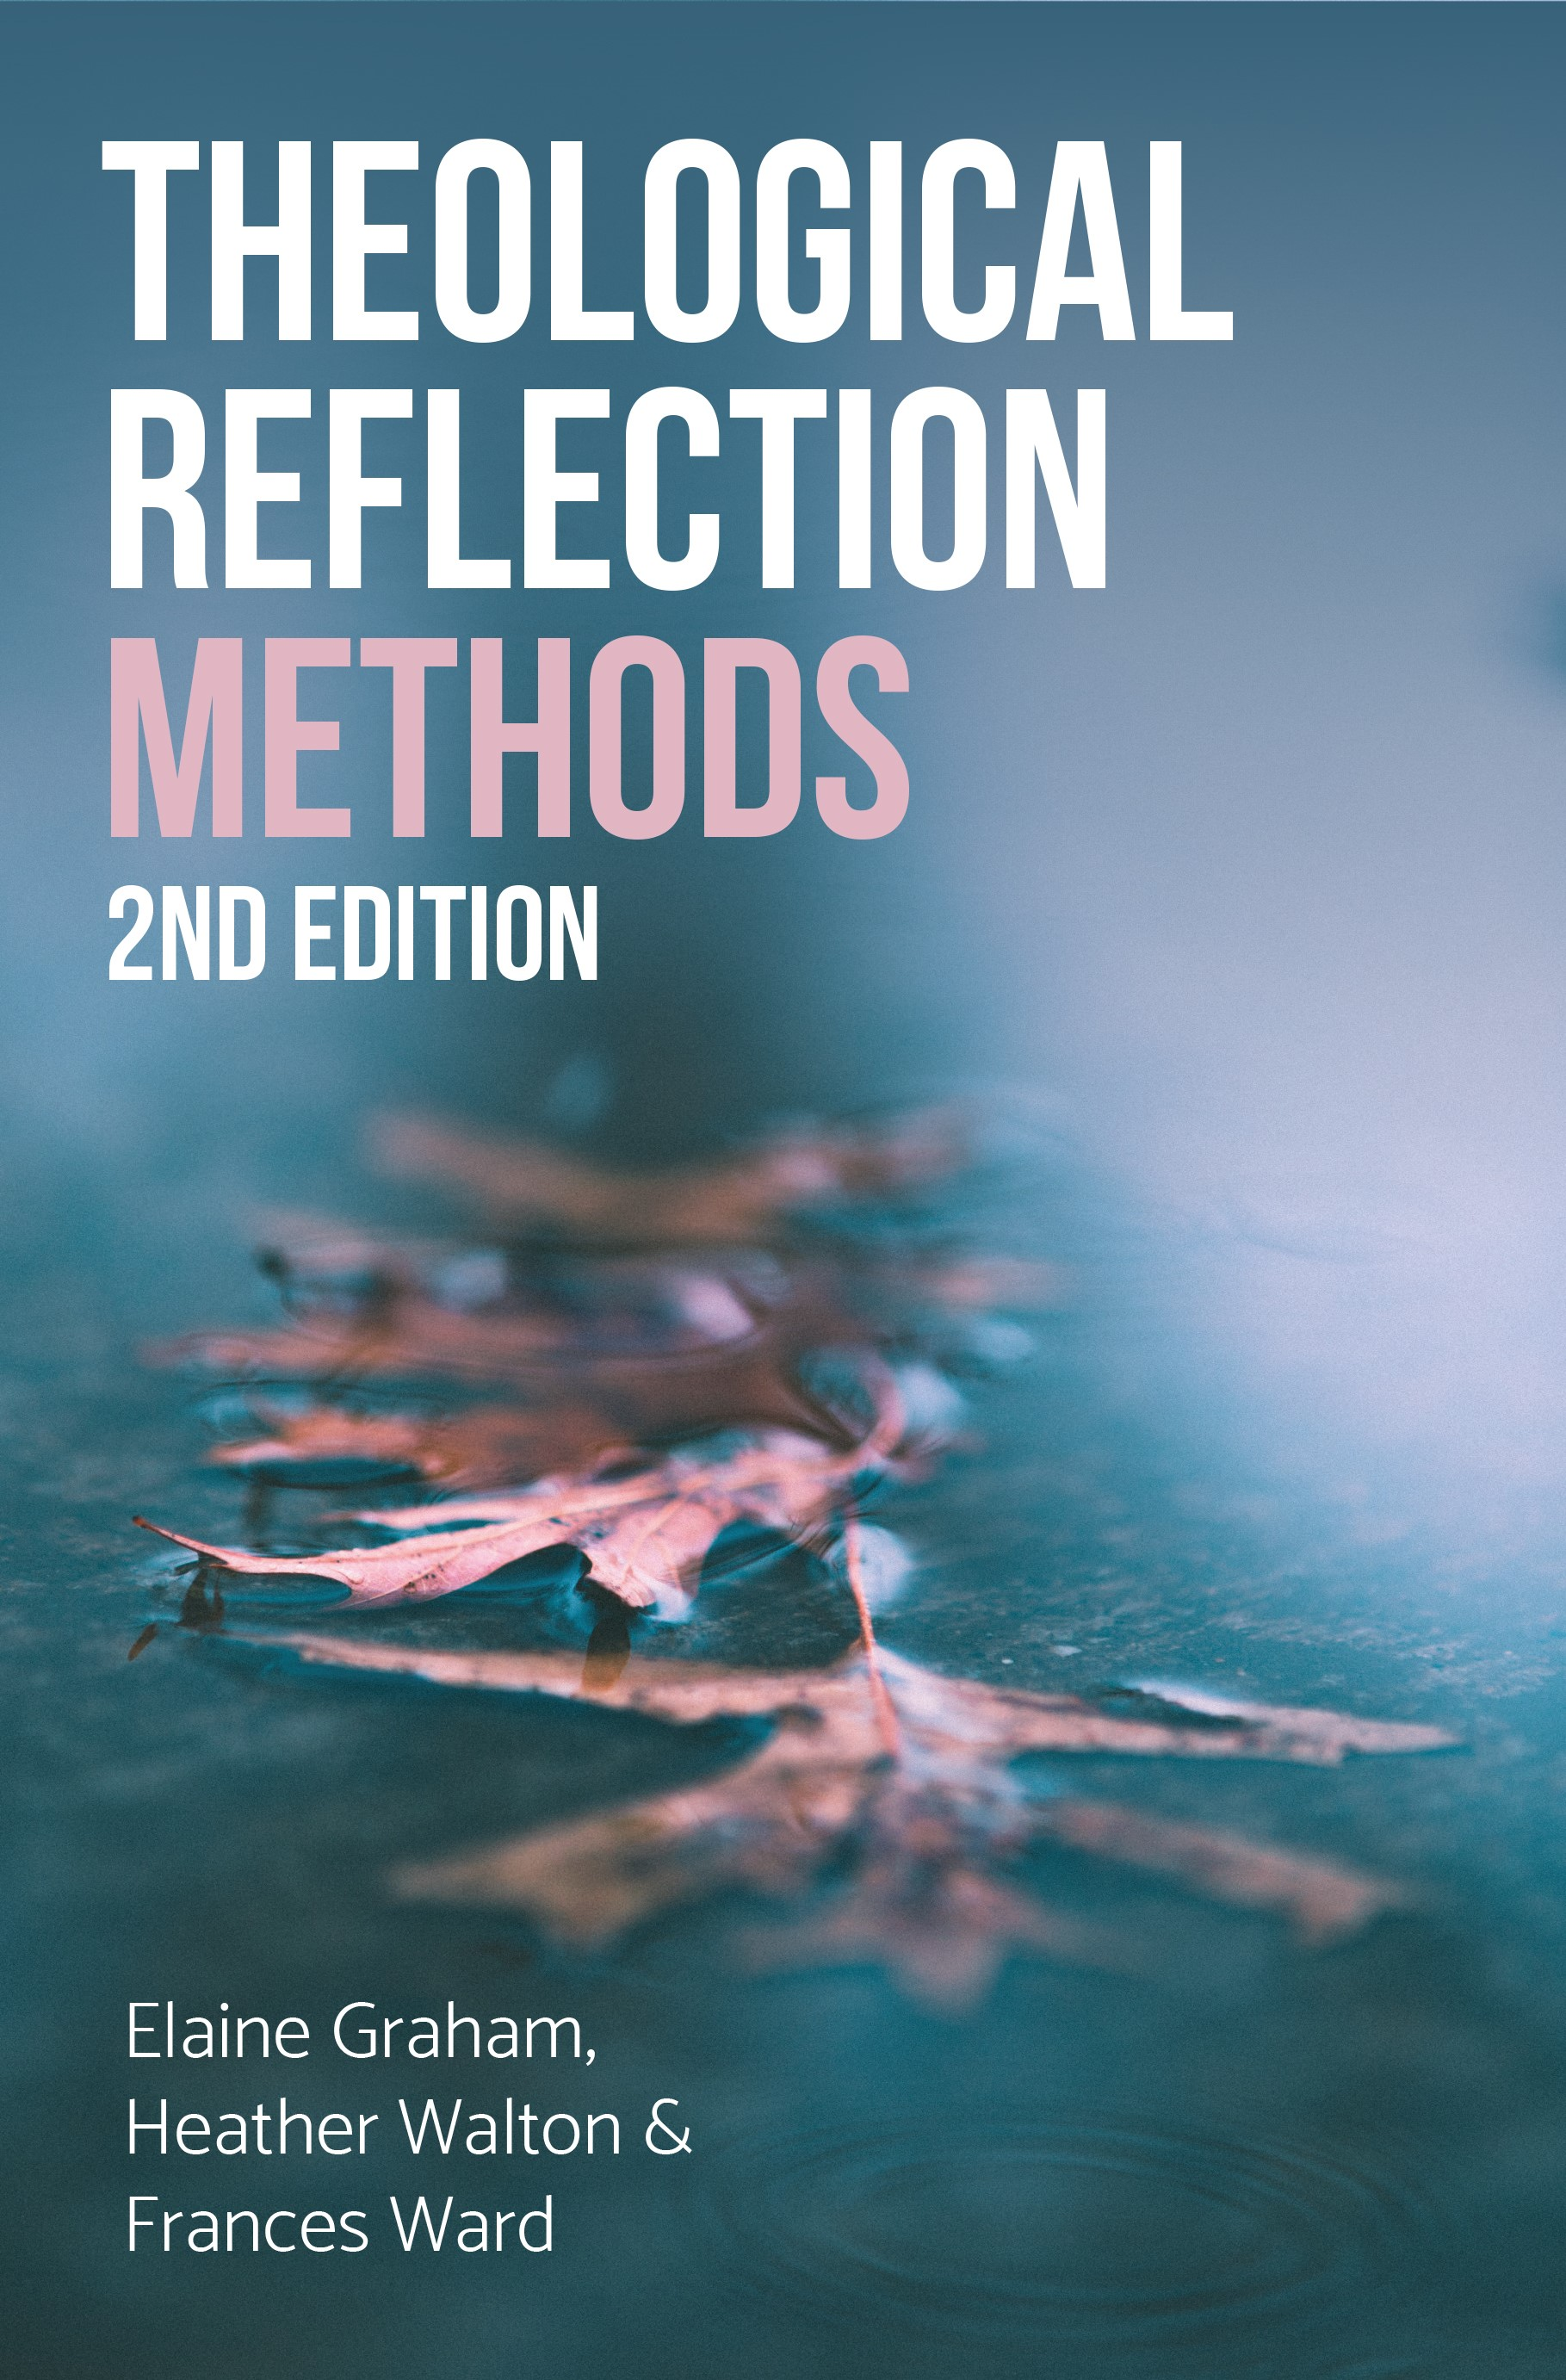 Theological Reflection, 2nd Edition